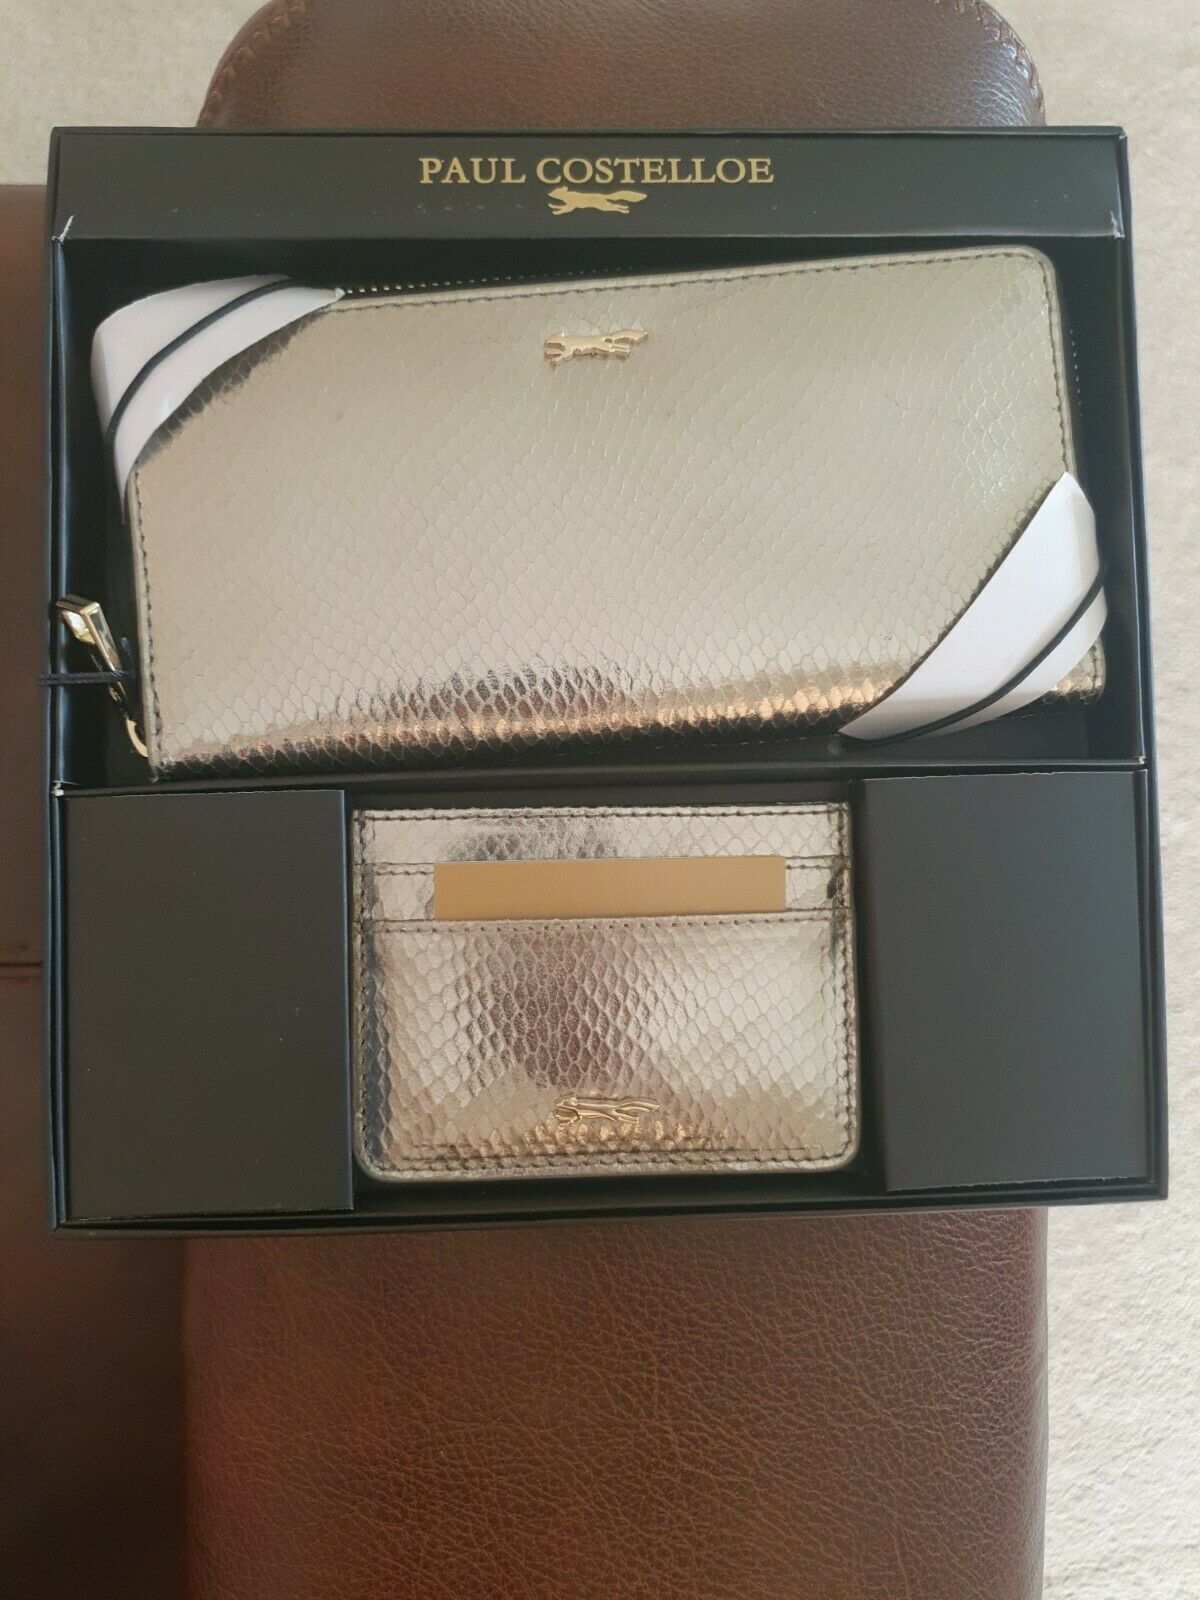 New Leather Purse & Cardholder RRP set by Paul Costelloe, Silver Gunmetal